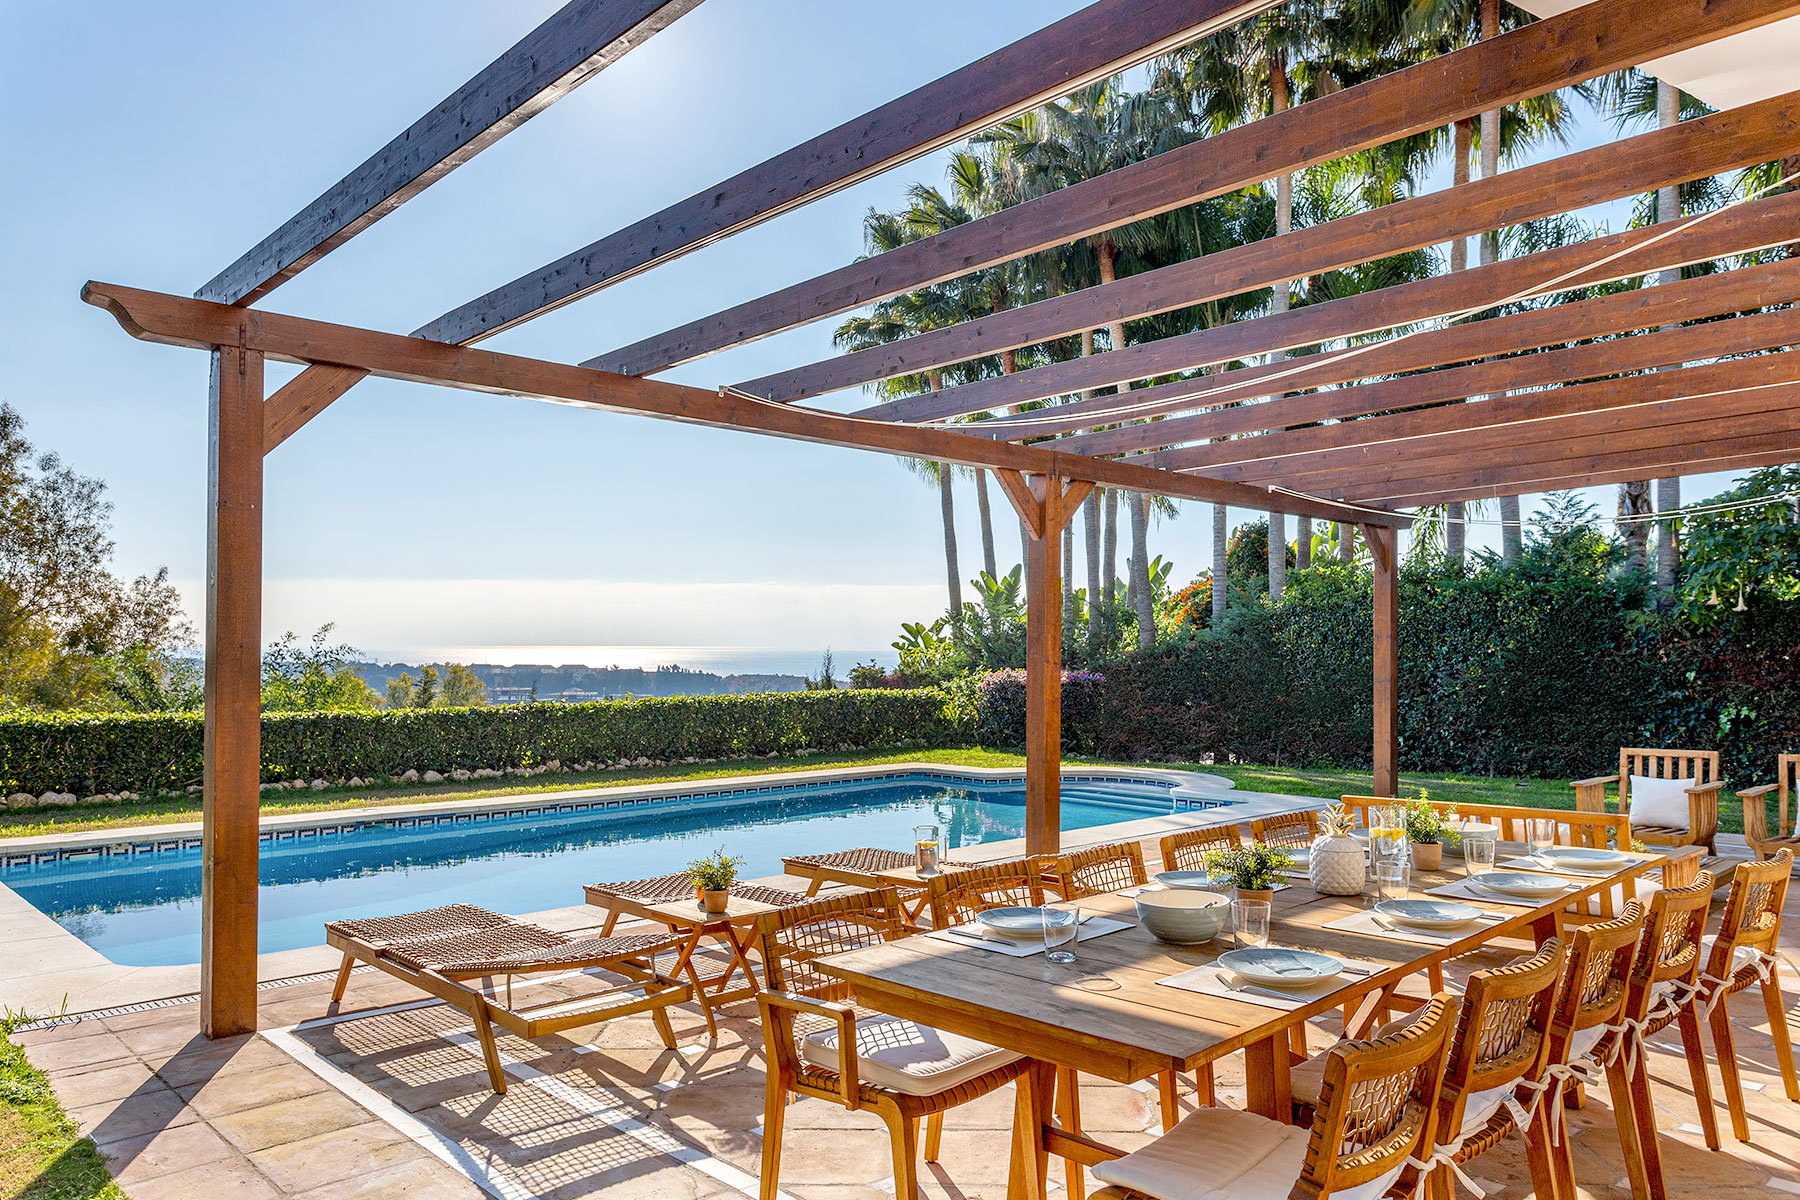 Amazing house with 6 bedrooms and private garden & pool in Marbella. Rio Real Golf